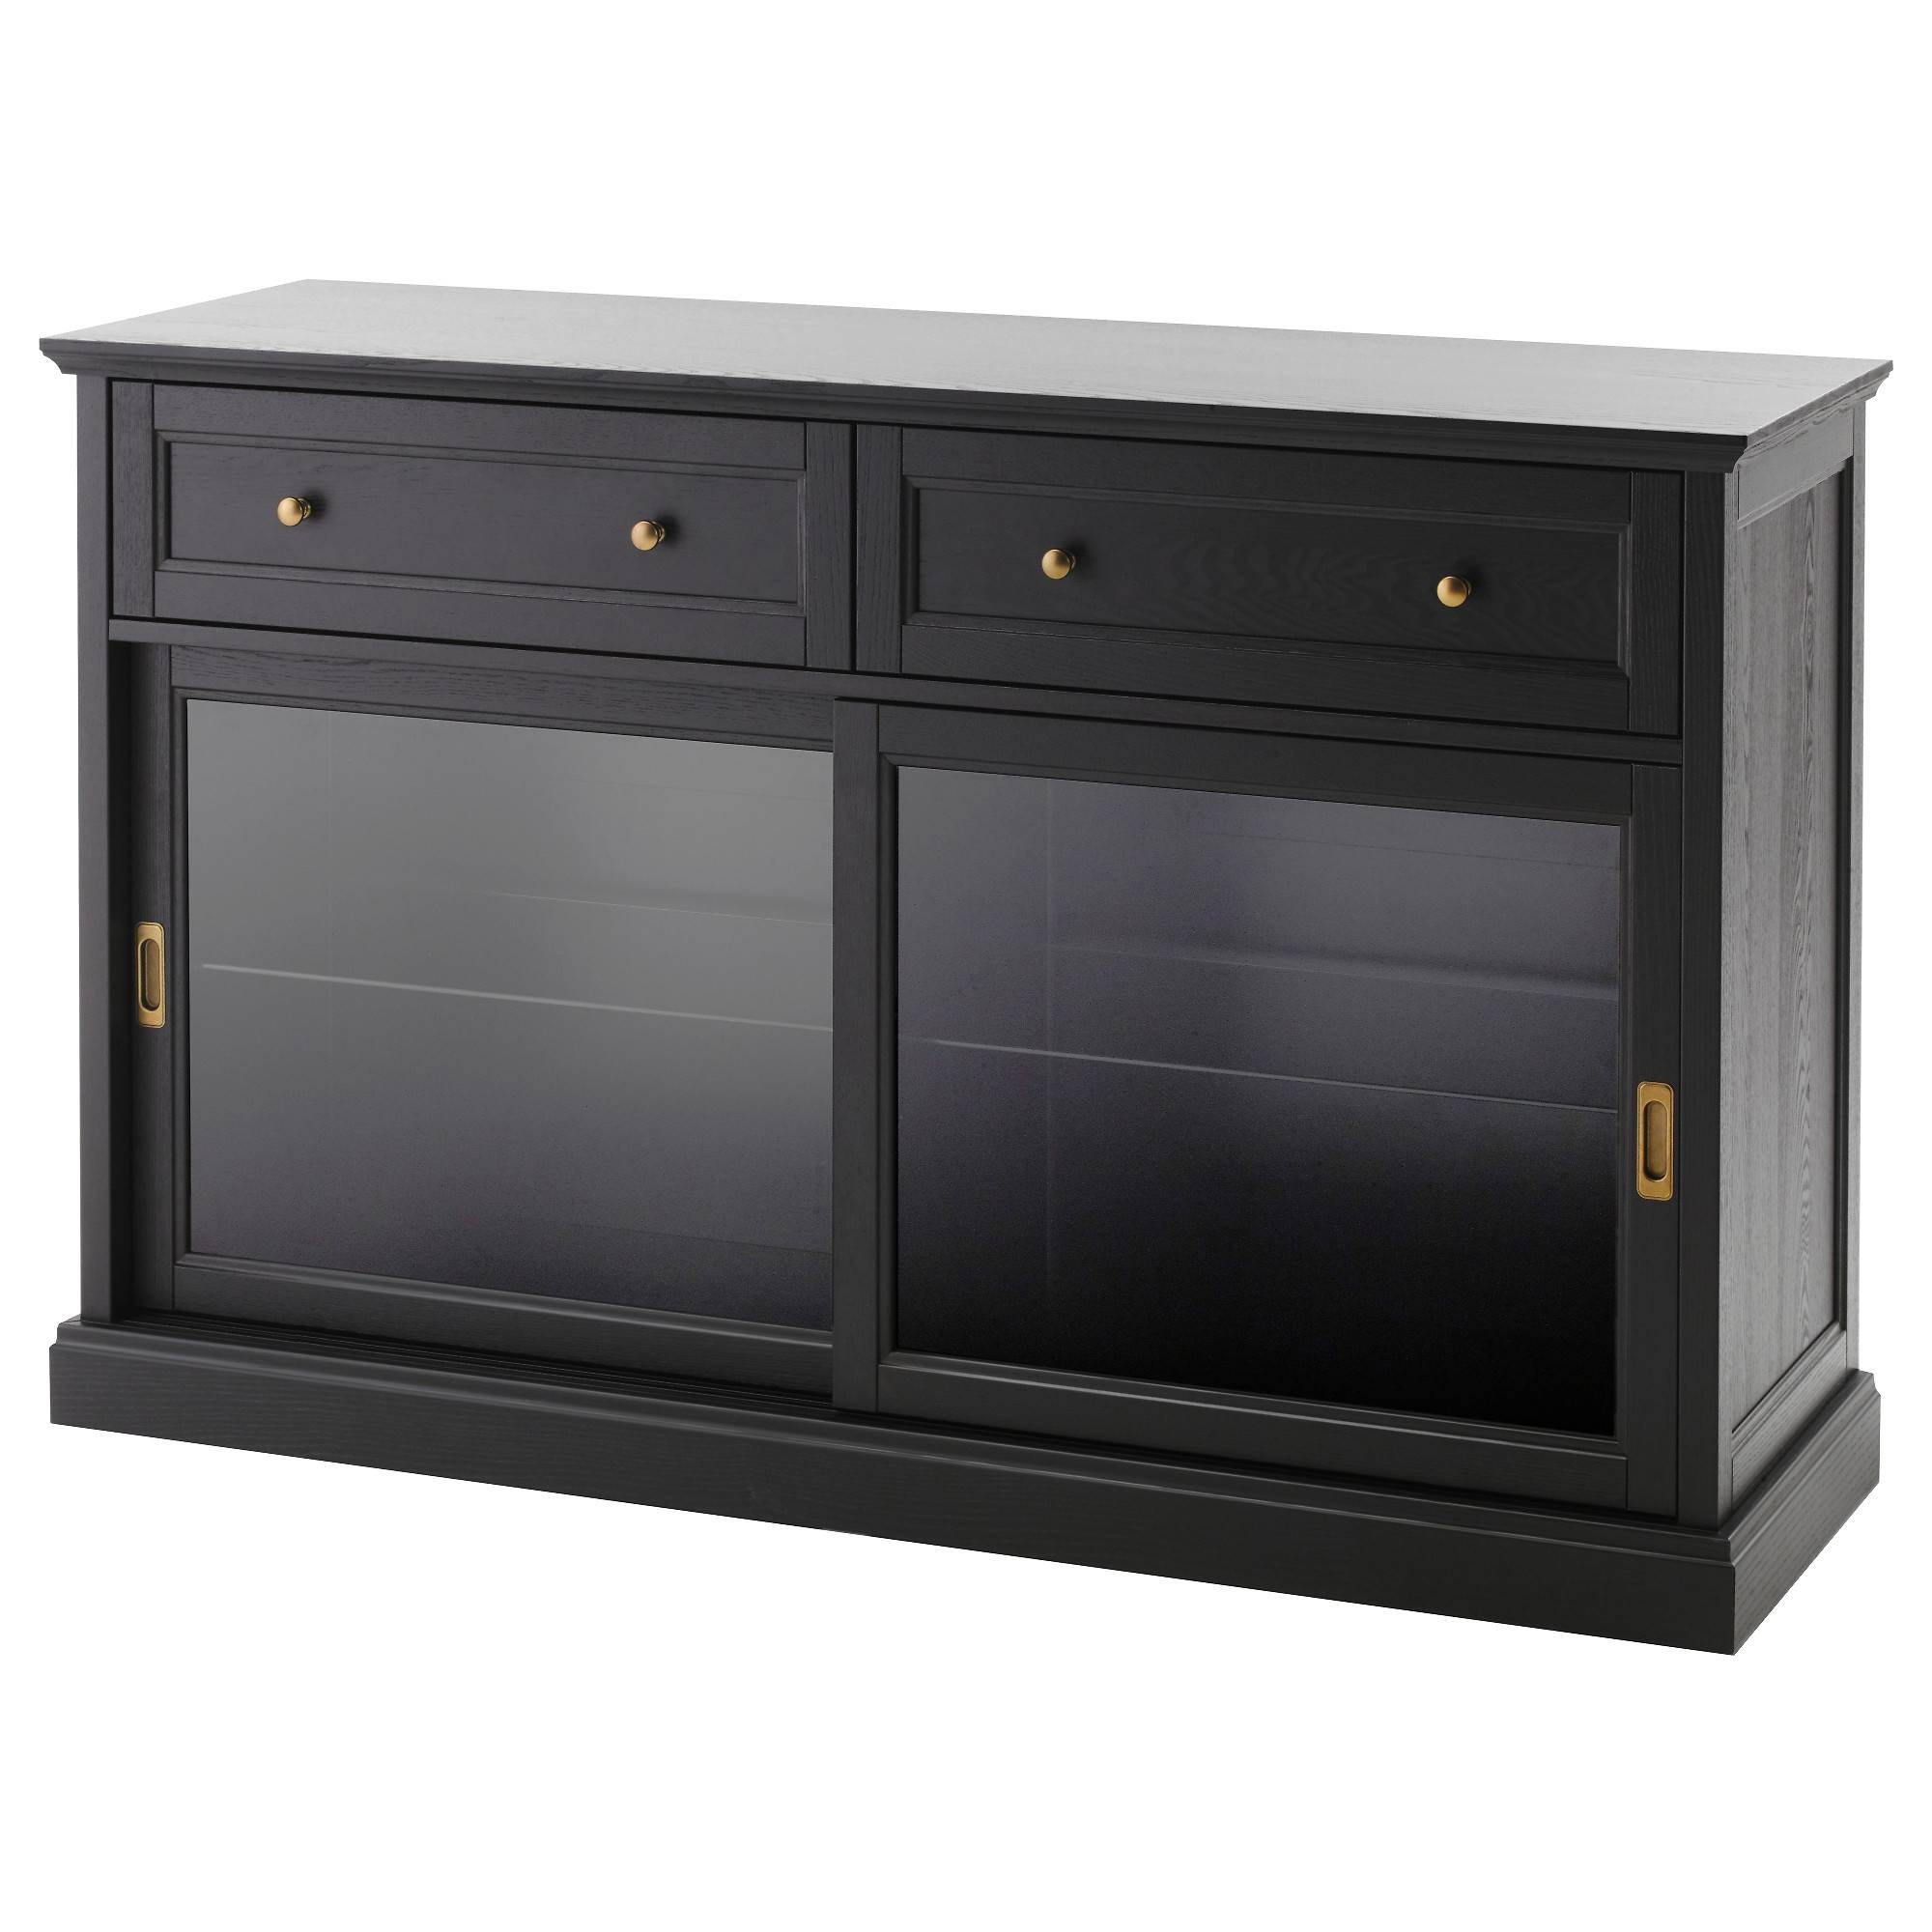 Buffet Tables & Sideboards - Ikea with regard to White Sideboard Cabinets (Image 8 of 30)